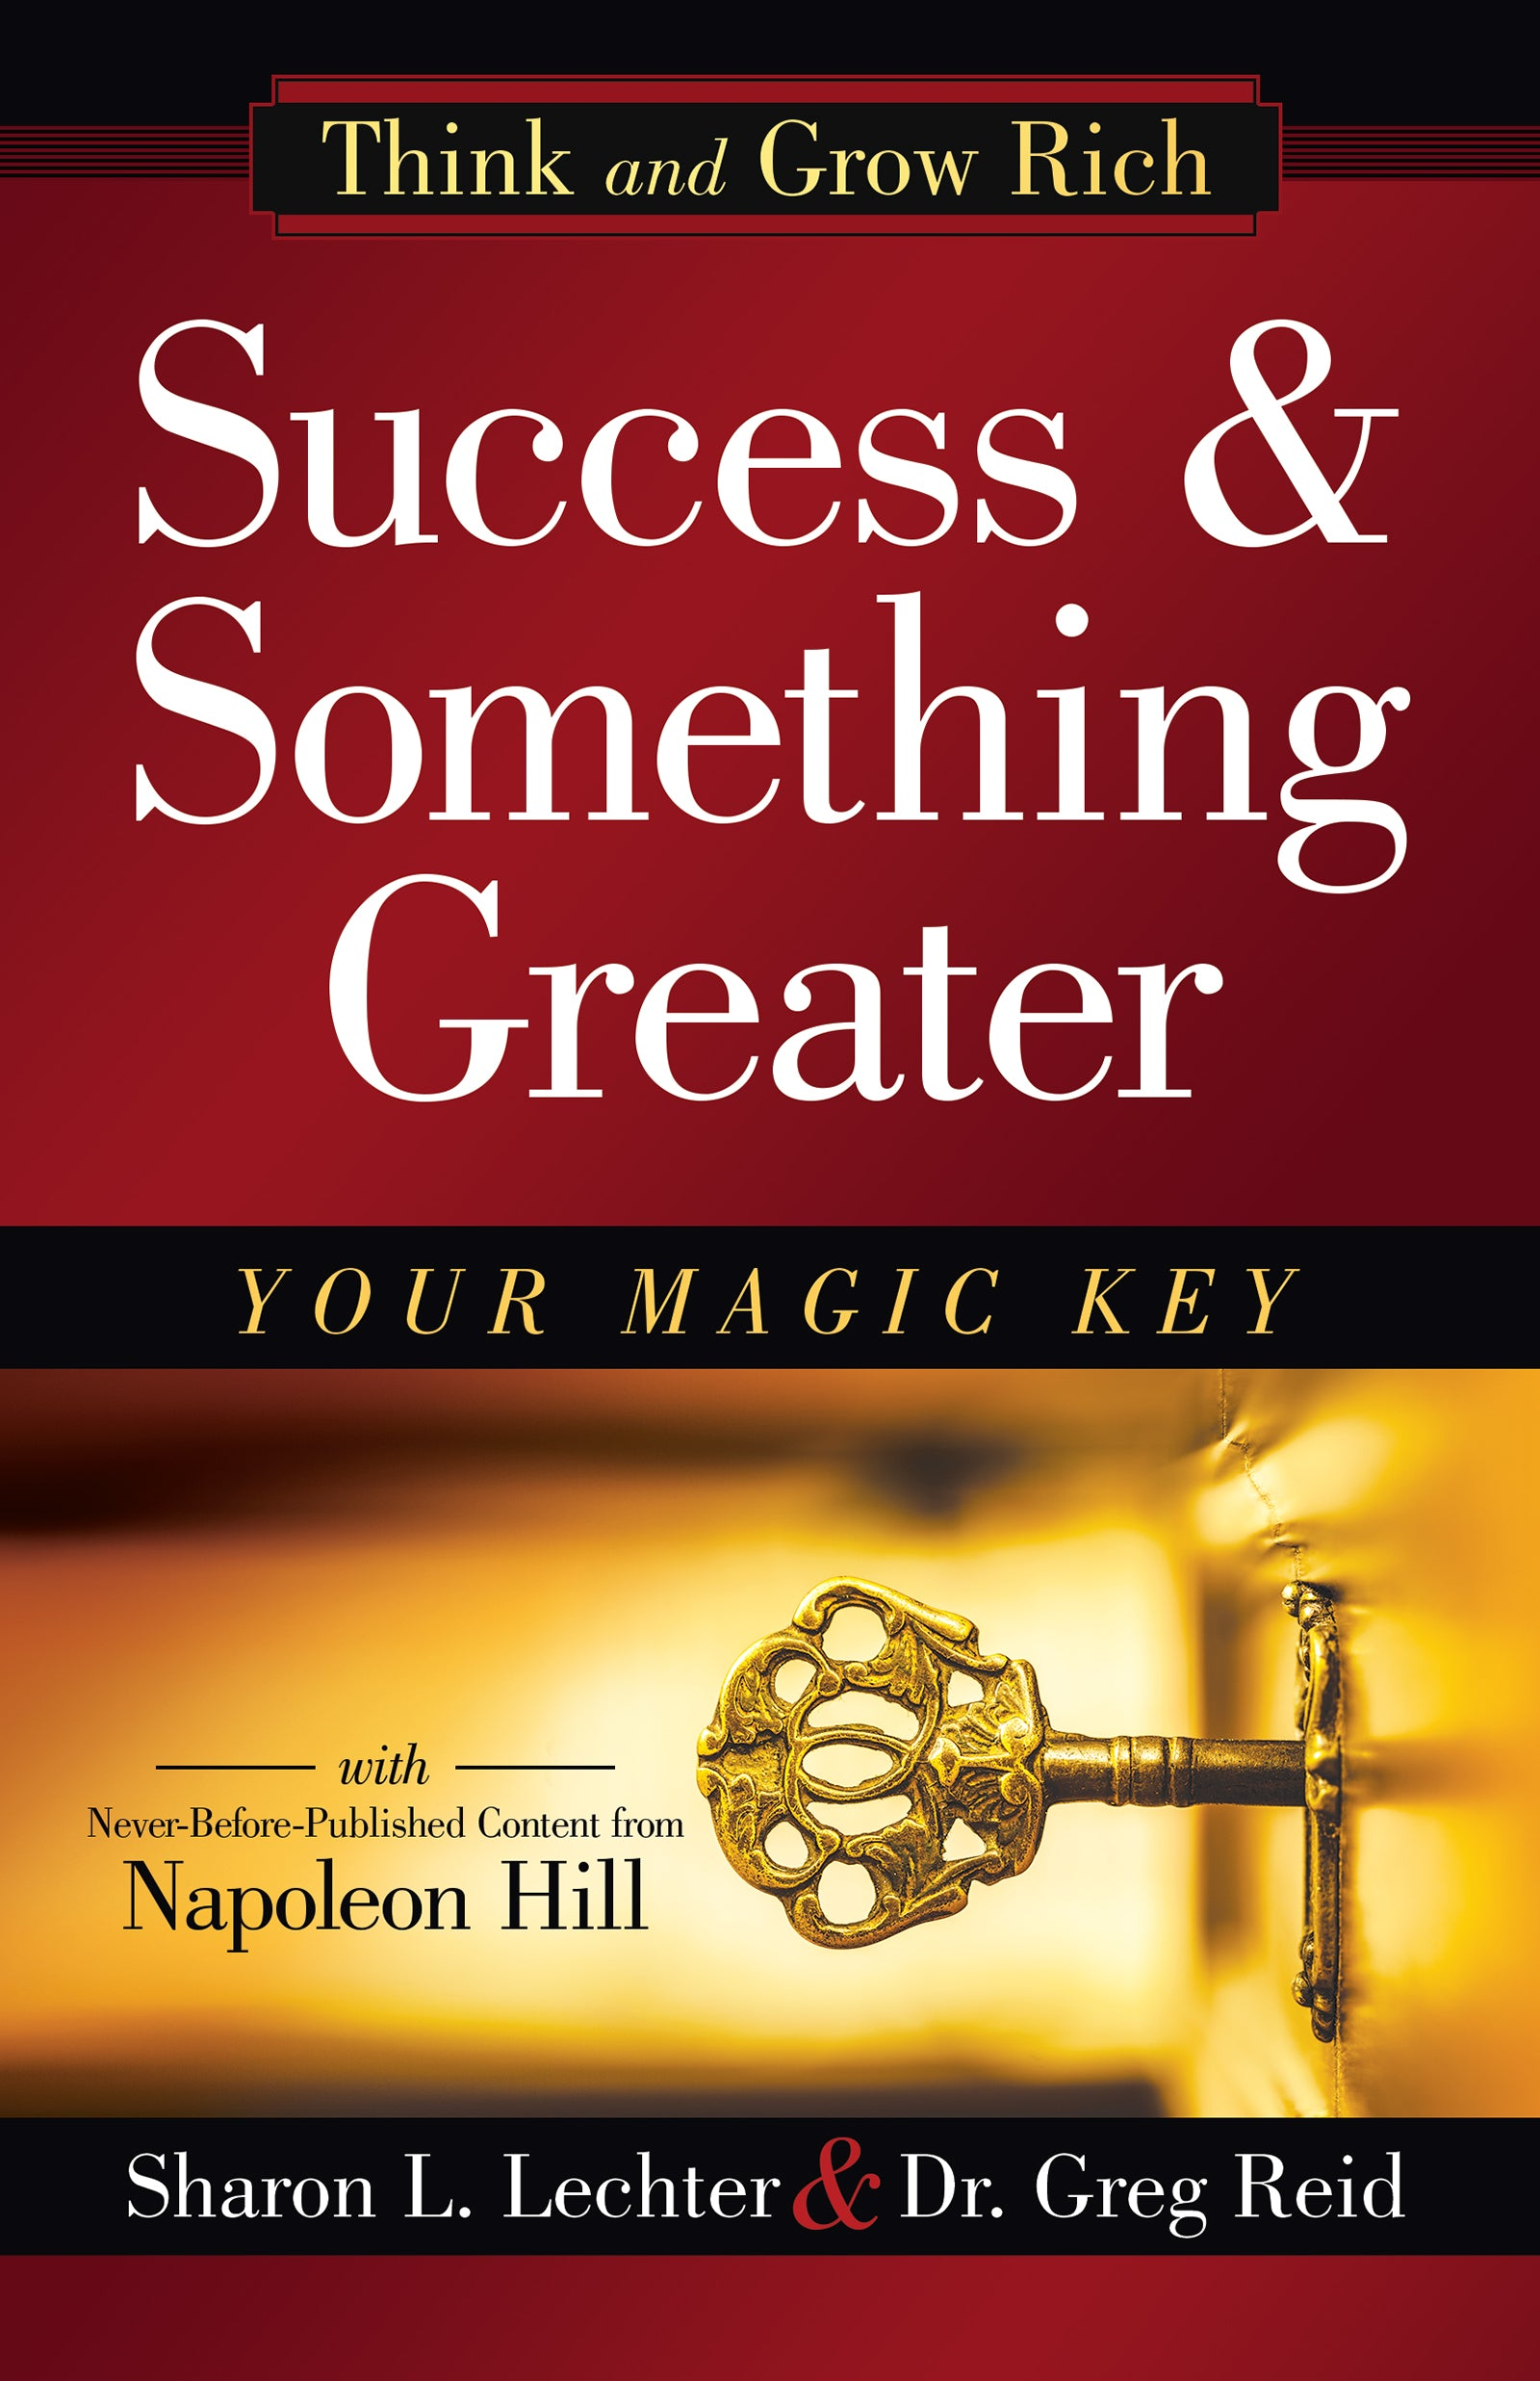 Think and Grow Rich-Success and Something Greater Hardcover book